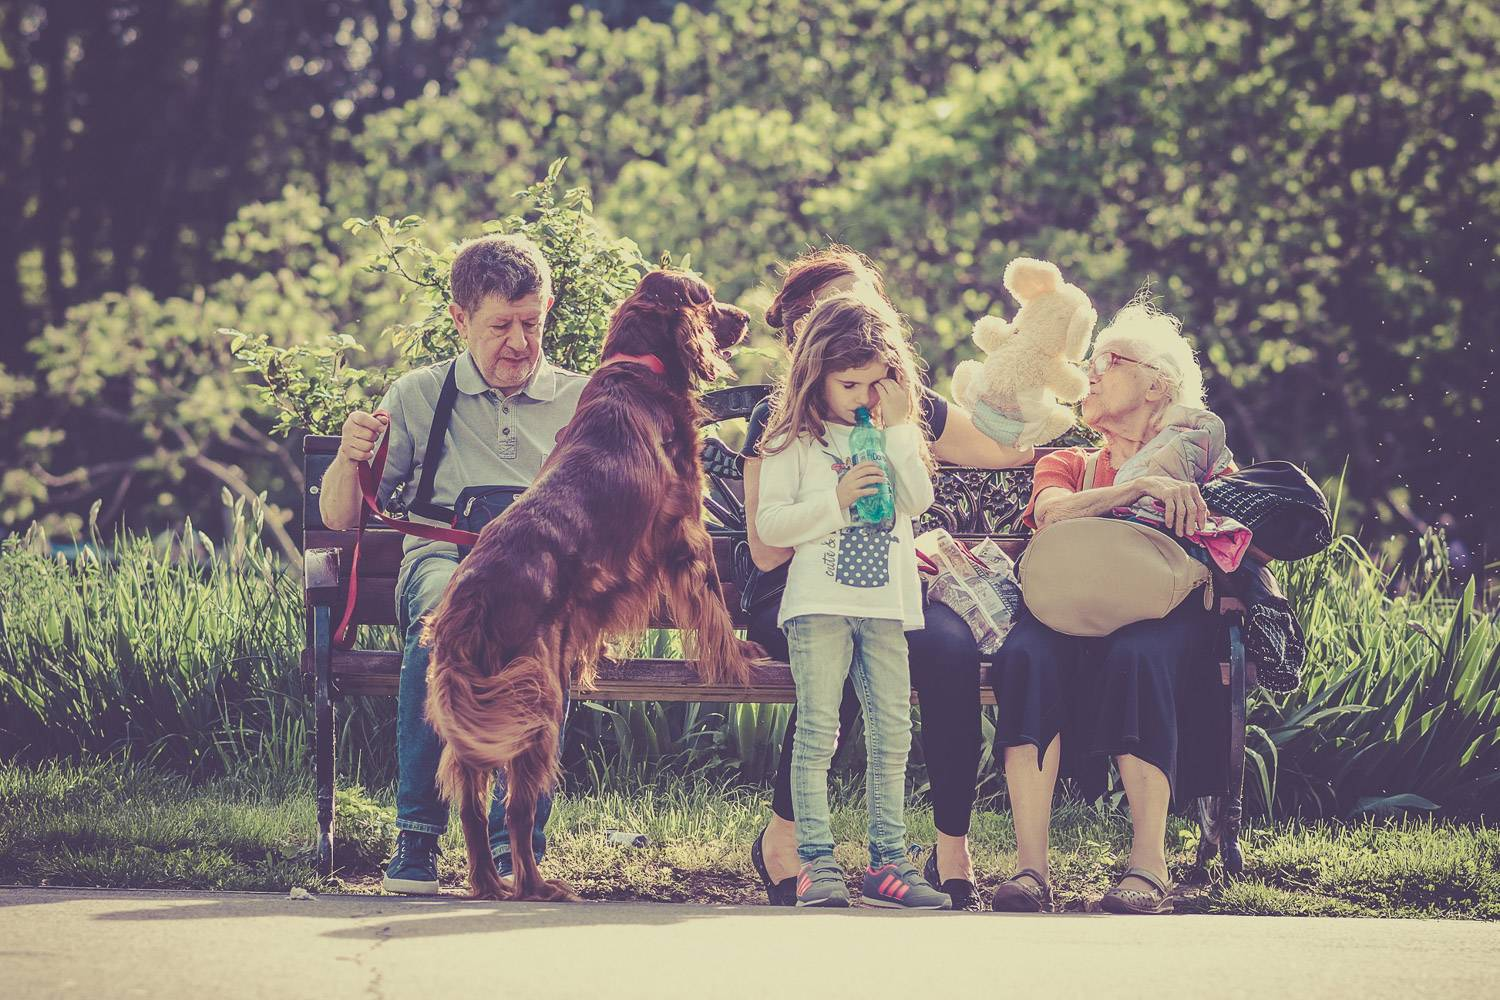 Image of a family sitting on a park bench with a child, a dog and an elderly woman